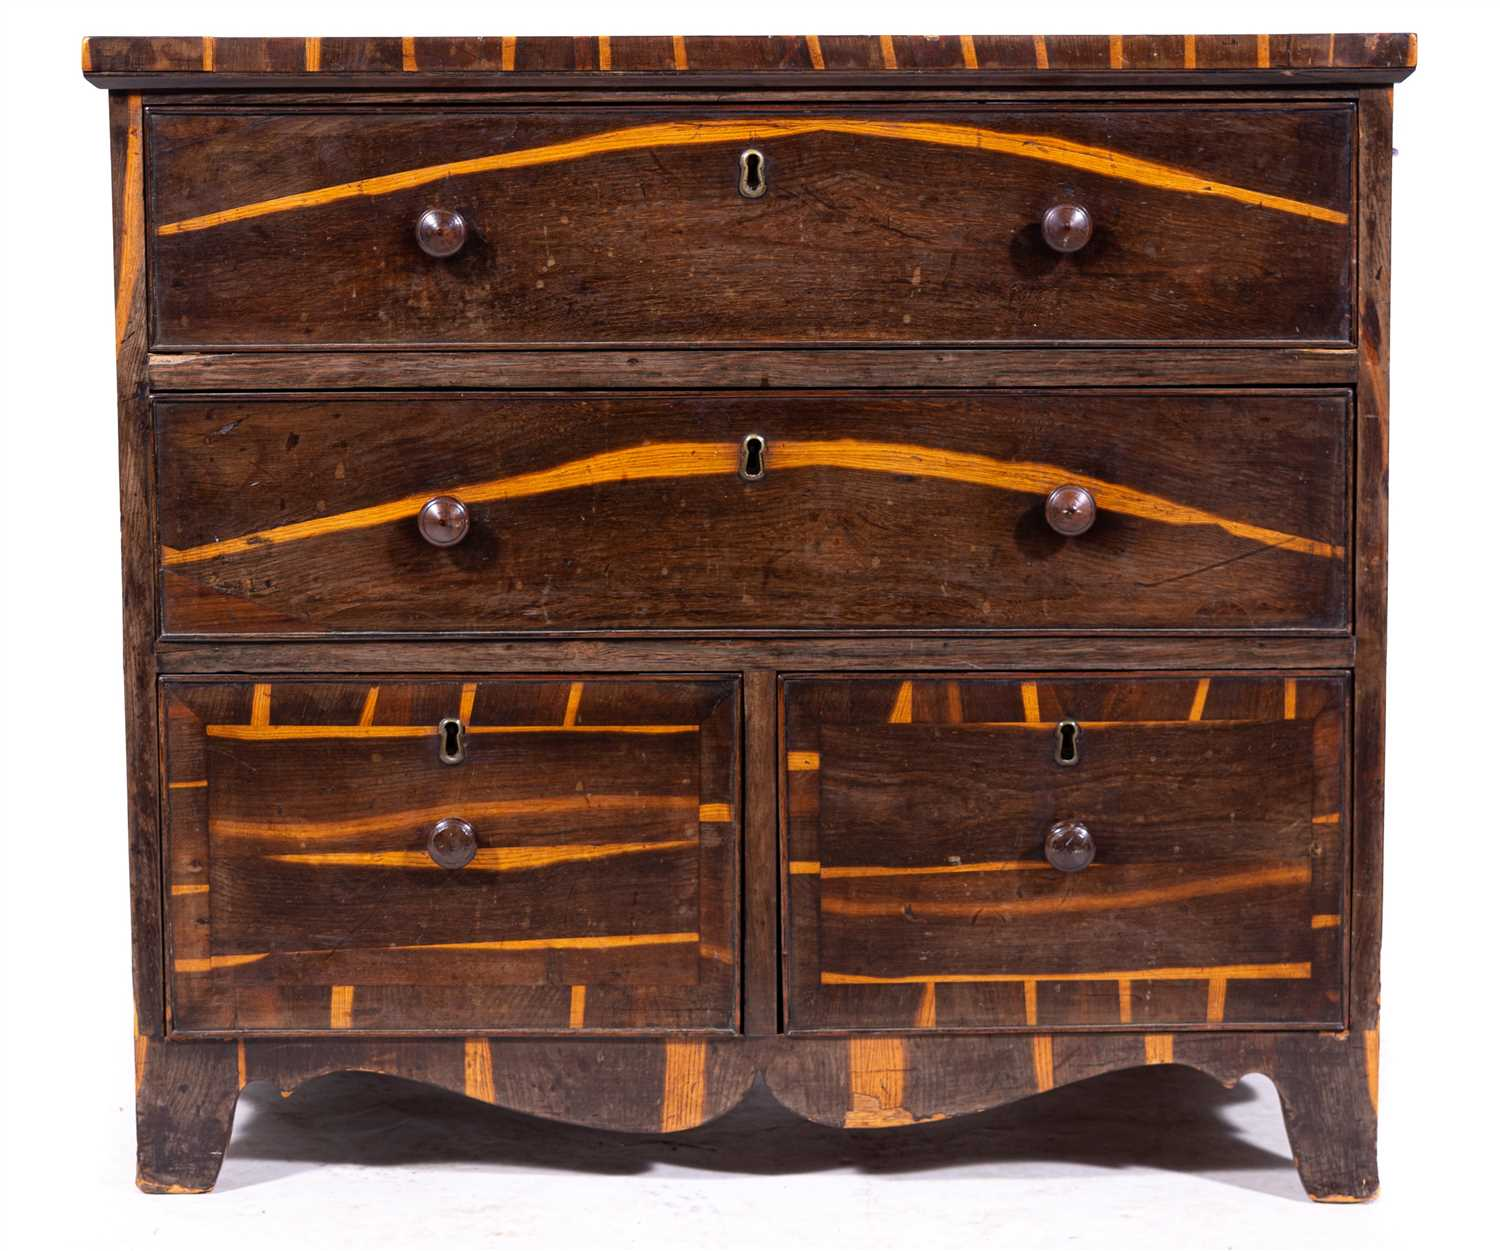 Lot 463-A William IV calamander chest of drawers